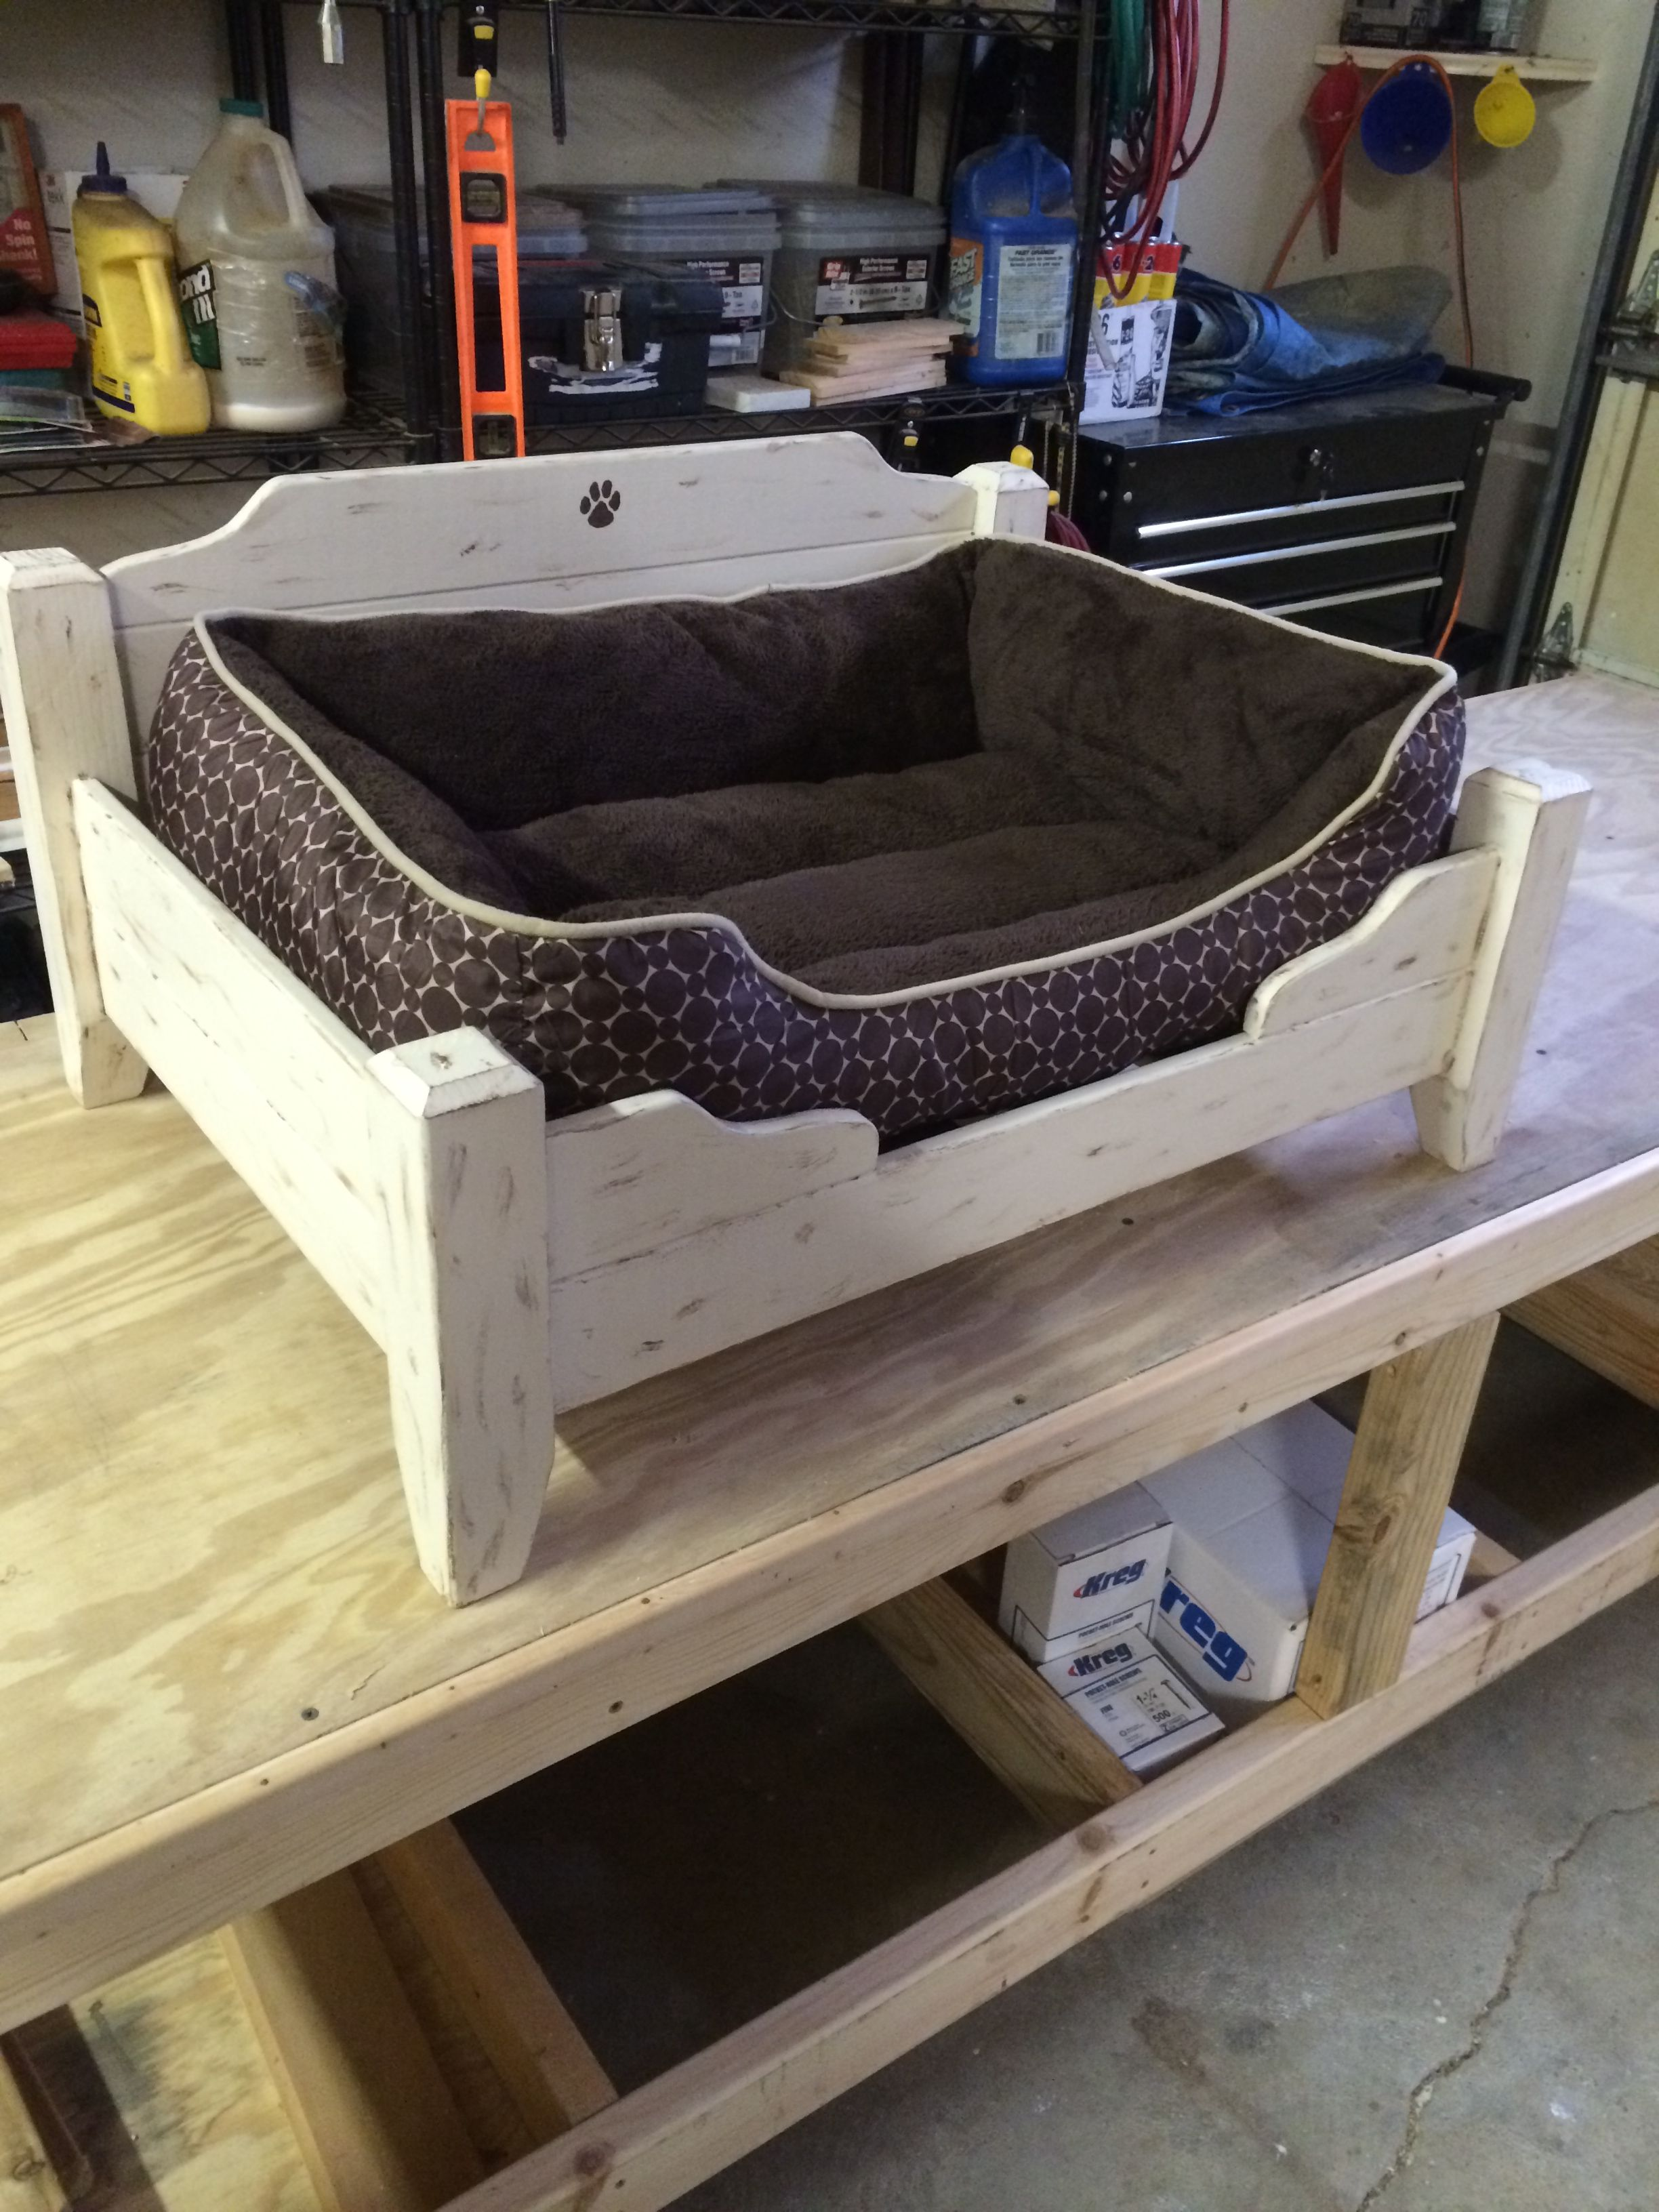 Medium Dog Bed. Paint color cream with black faux